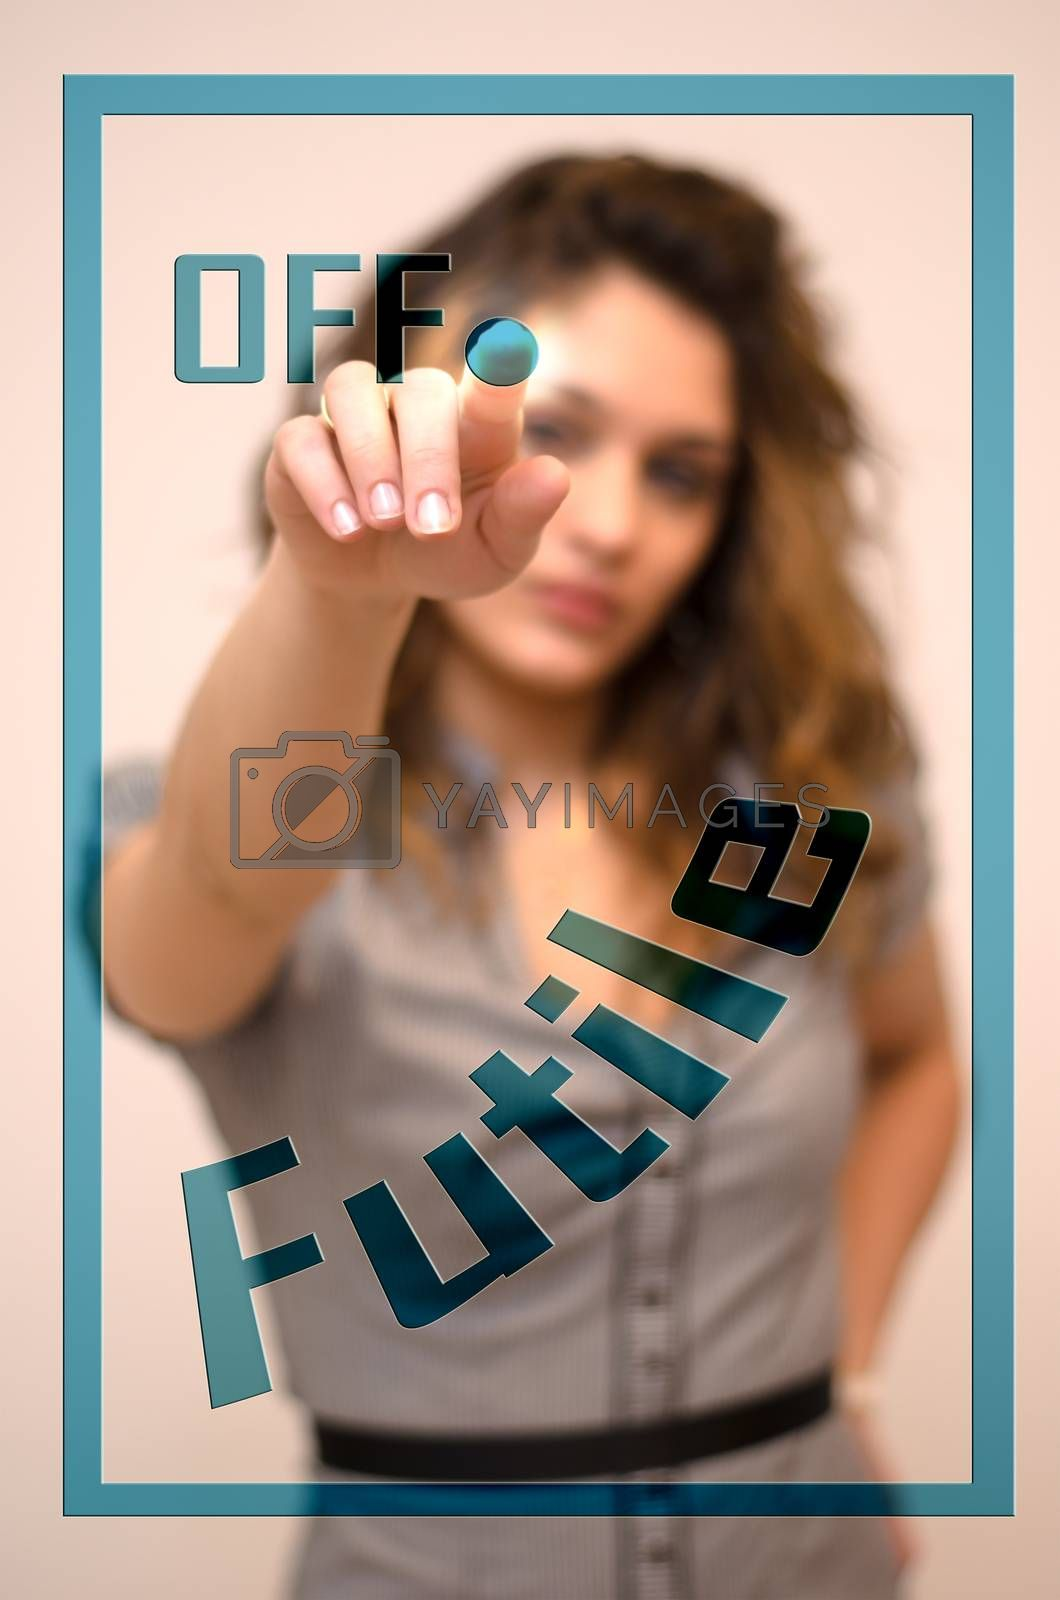 young woman turning off Futile on digital panel